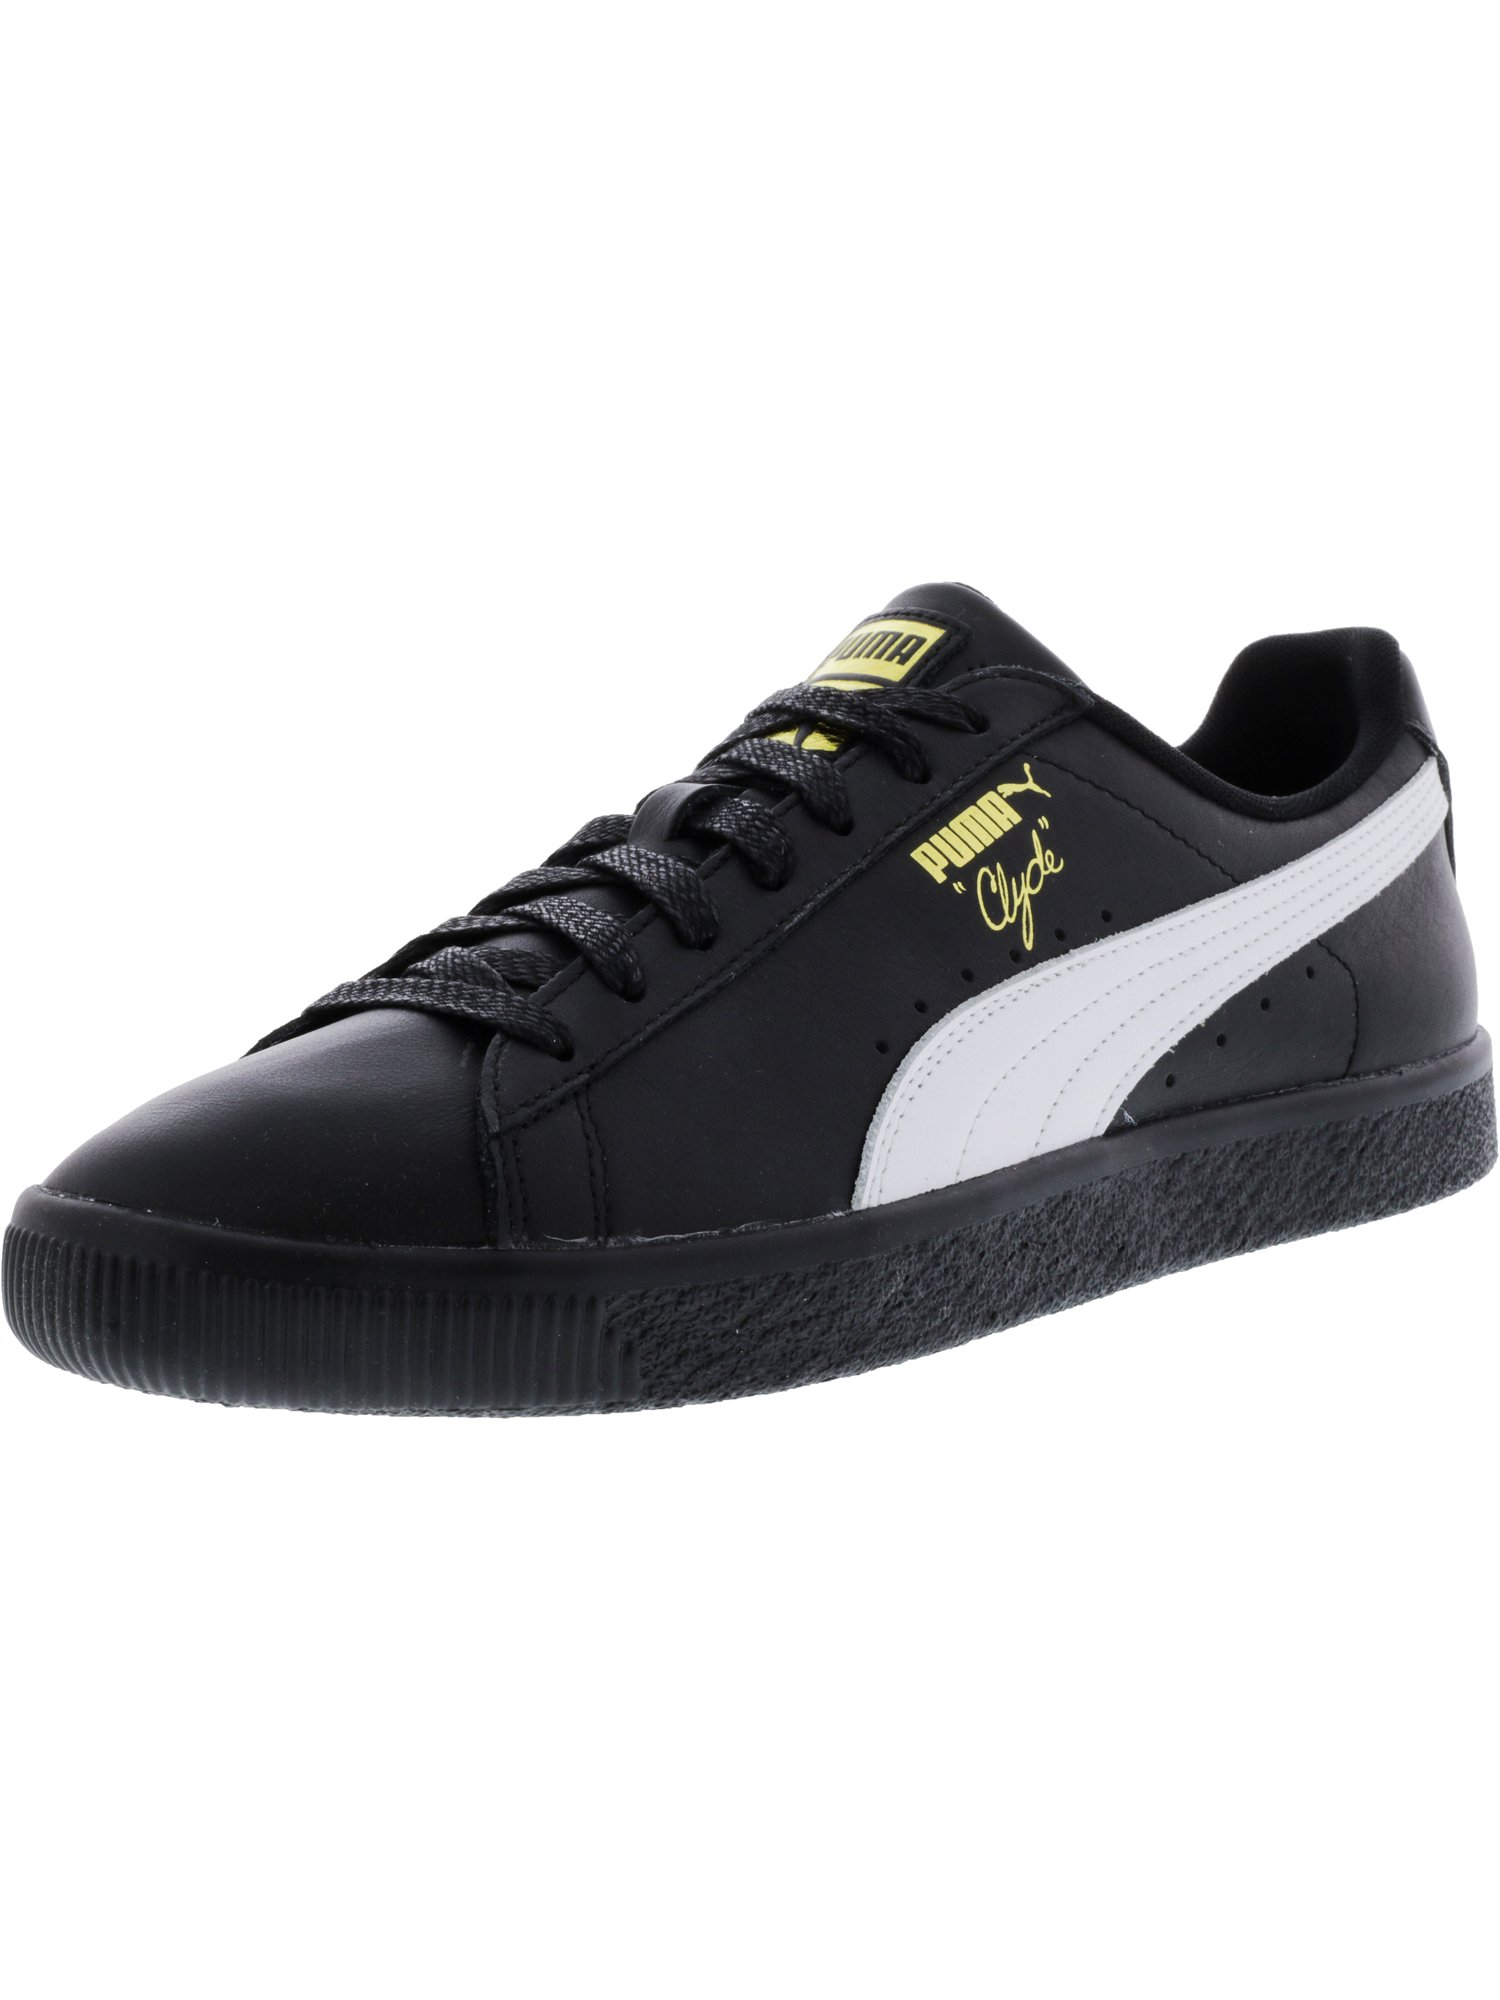 the latest 4cdd3 203ee Puma Men's Clyde Black / White Gold Ankle-High Leather Fashion Sneaker - 12M